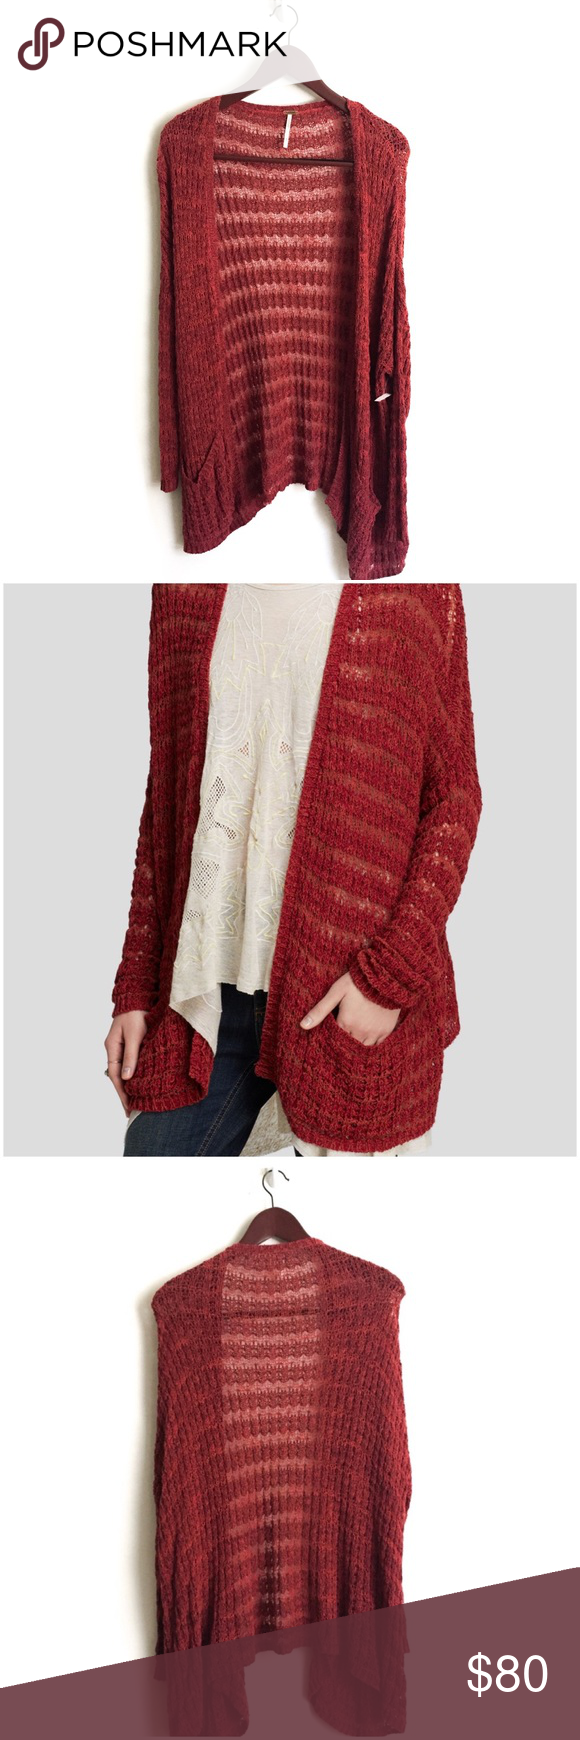 New Free People Cardigan ▫️Anthropologie Free People Cardigan ...